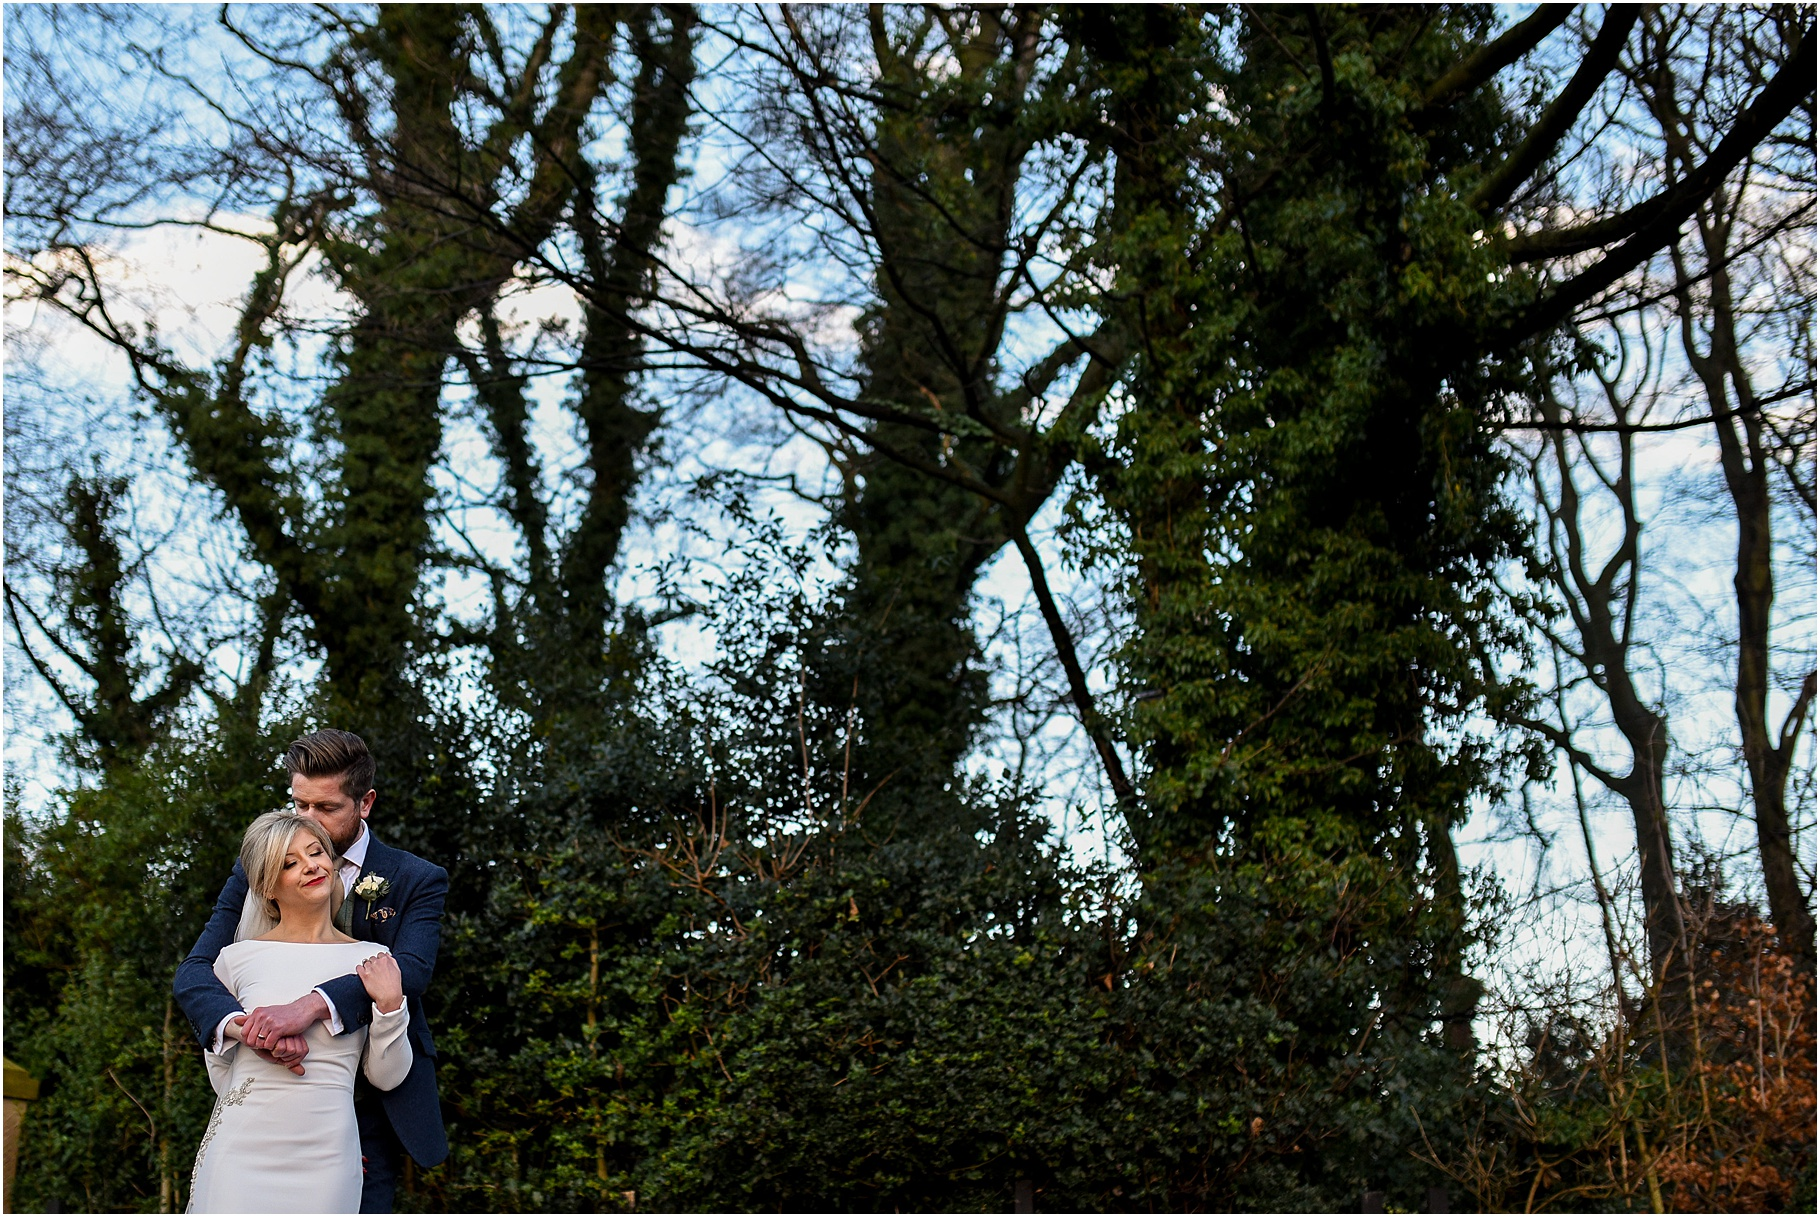 singleton-lodge-winter-wedding-31.jpg